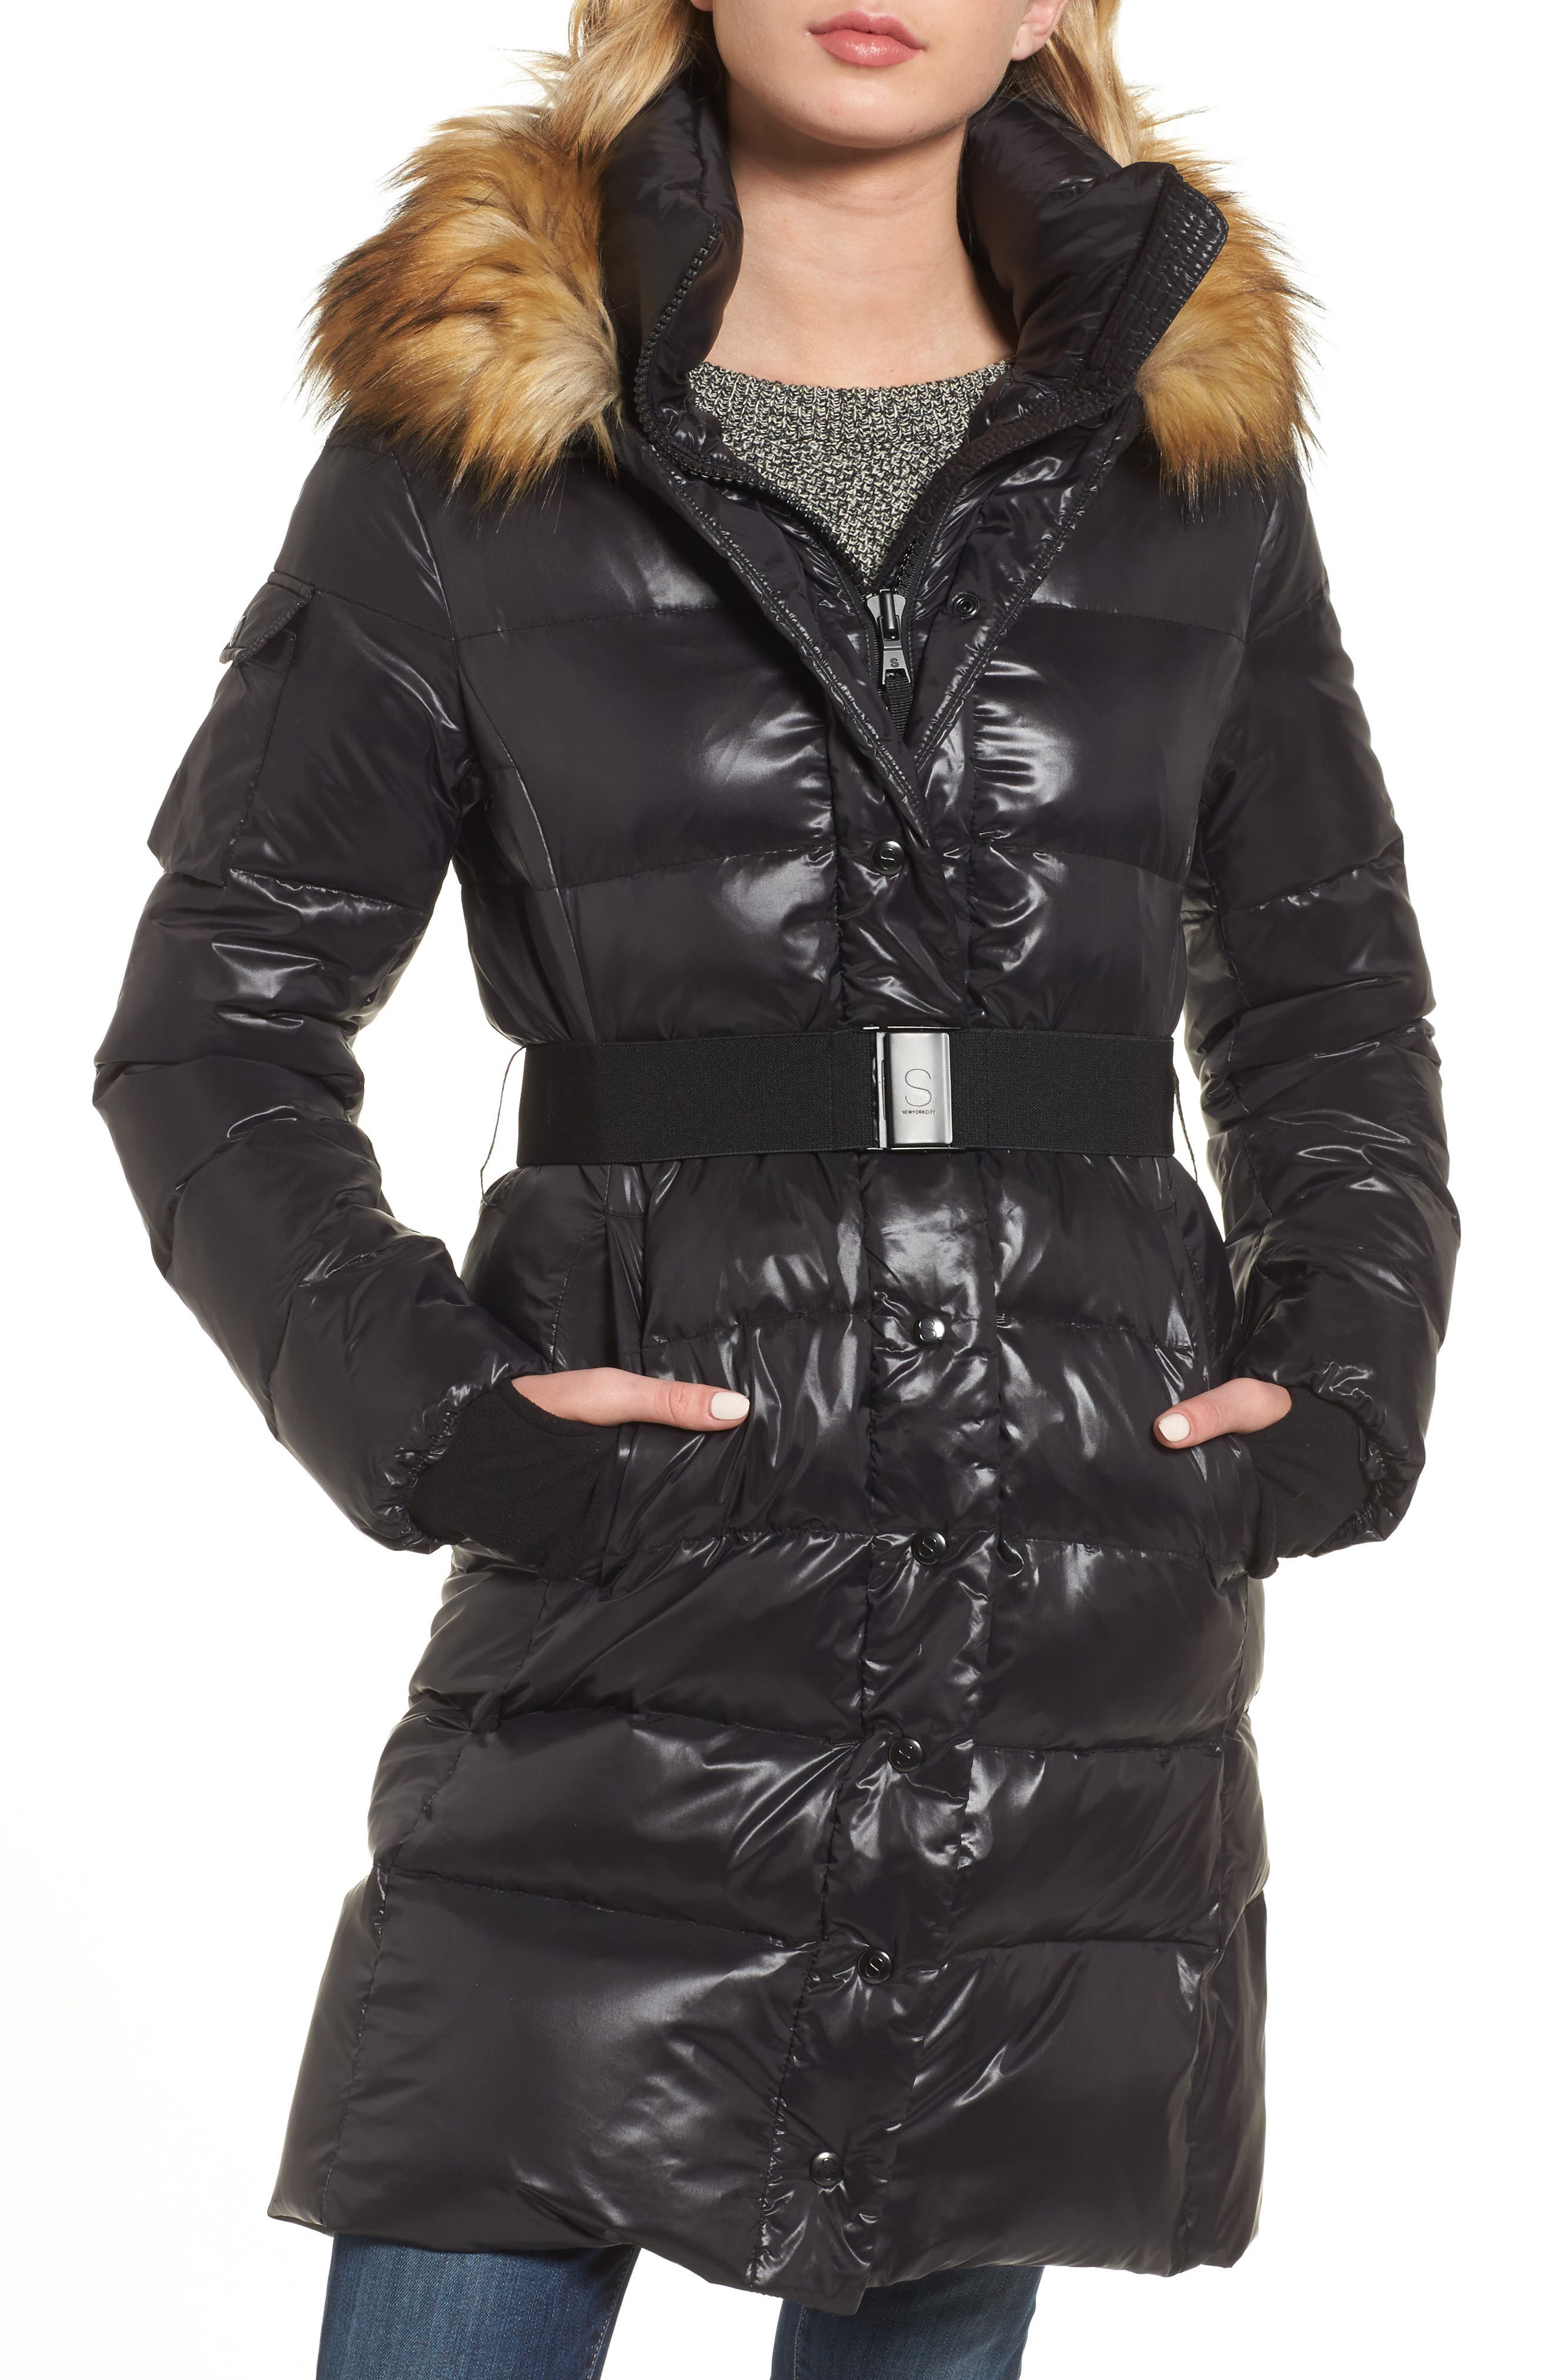 SAM. Chalet Hooded Puffer Coat with Faux Fur Trim